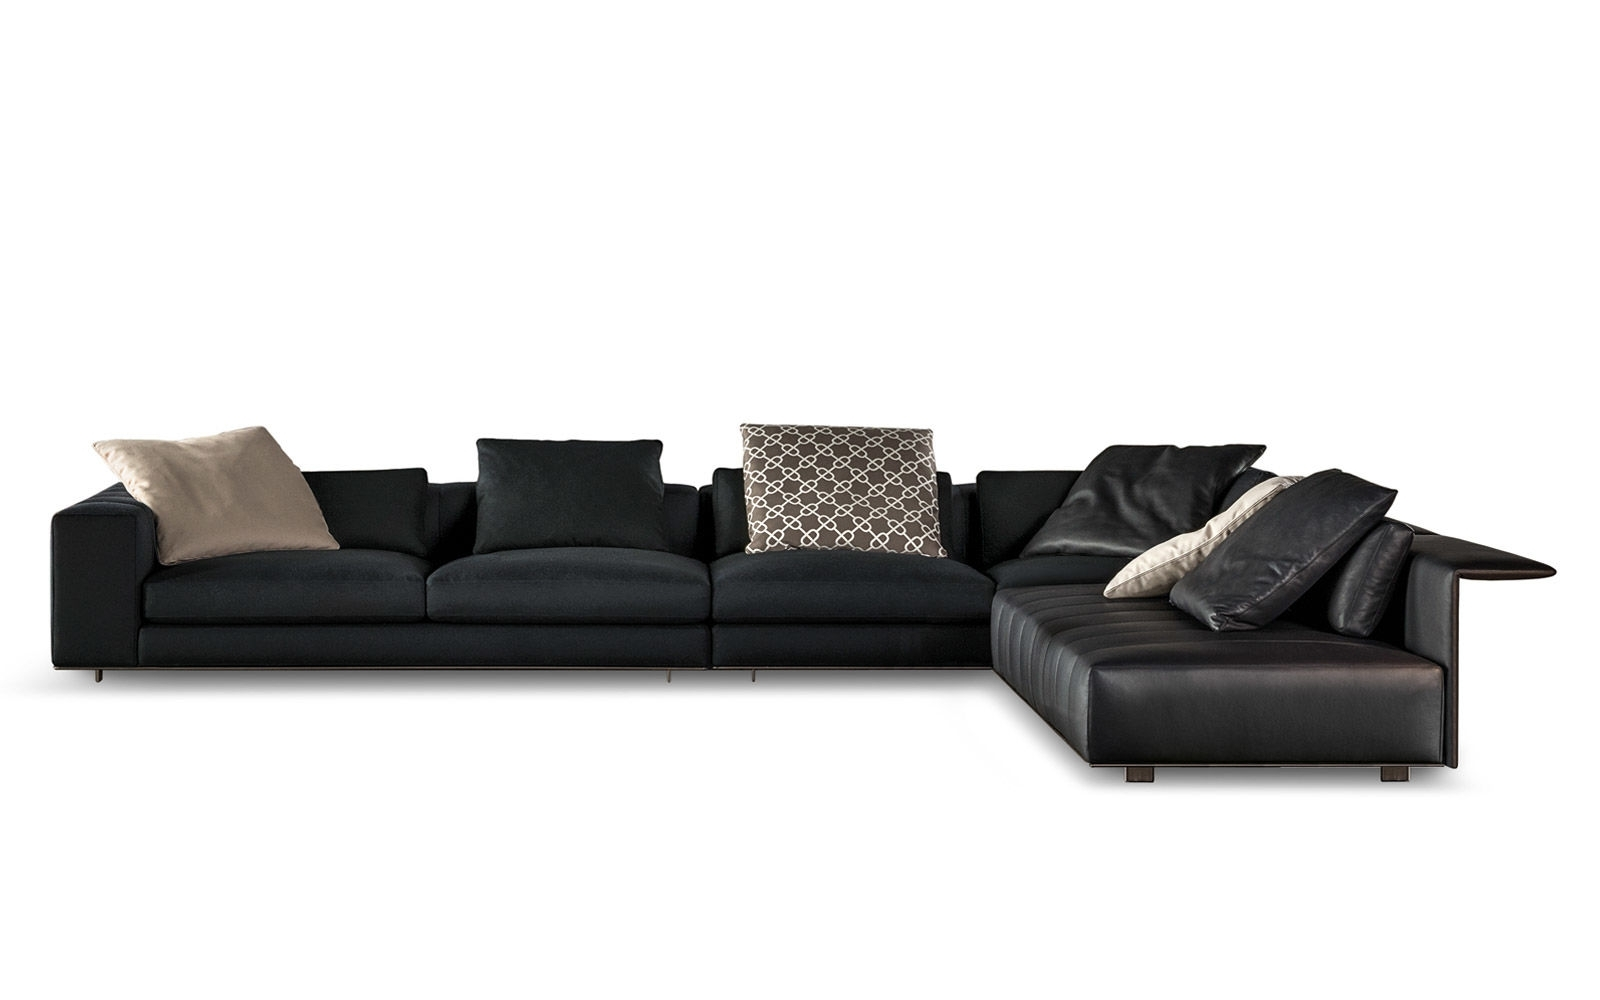 Freeman Seating System | Sofas – En Intended For Calder Grey 6 Piece Manual Reclining Sectionals (View 15 of 25)